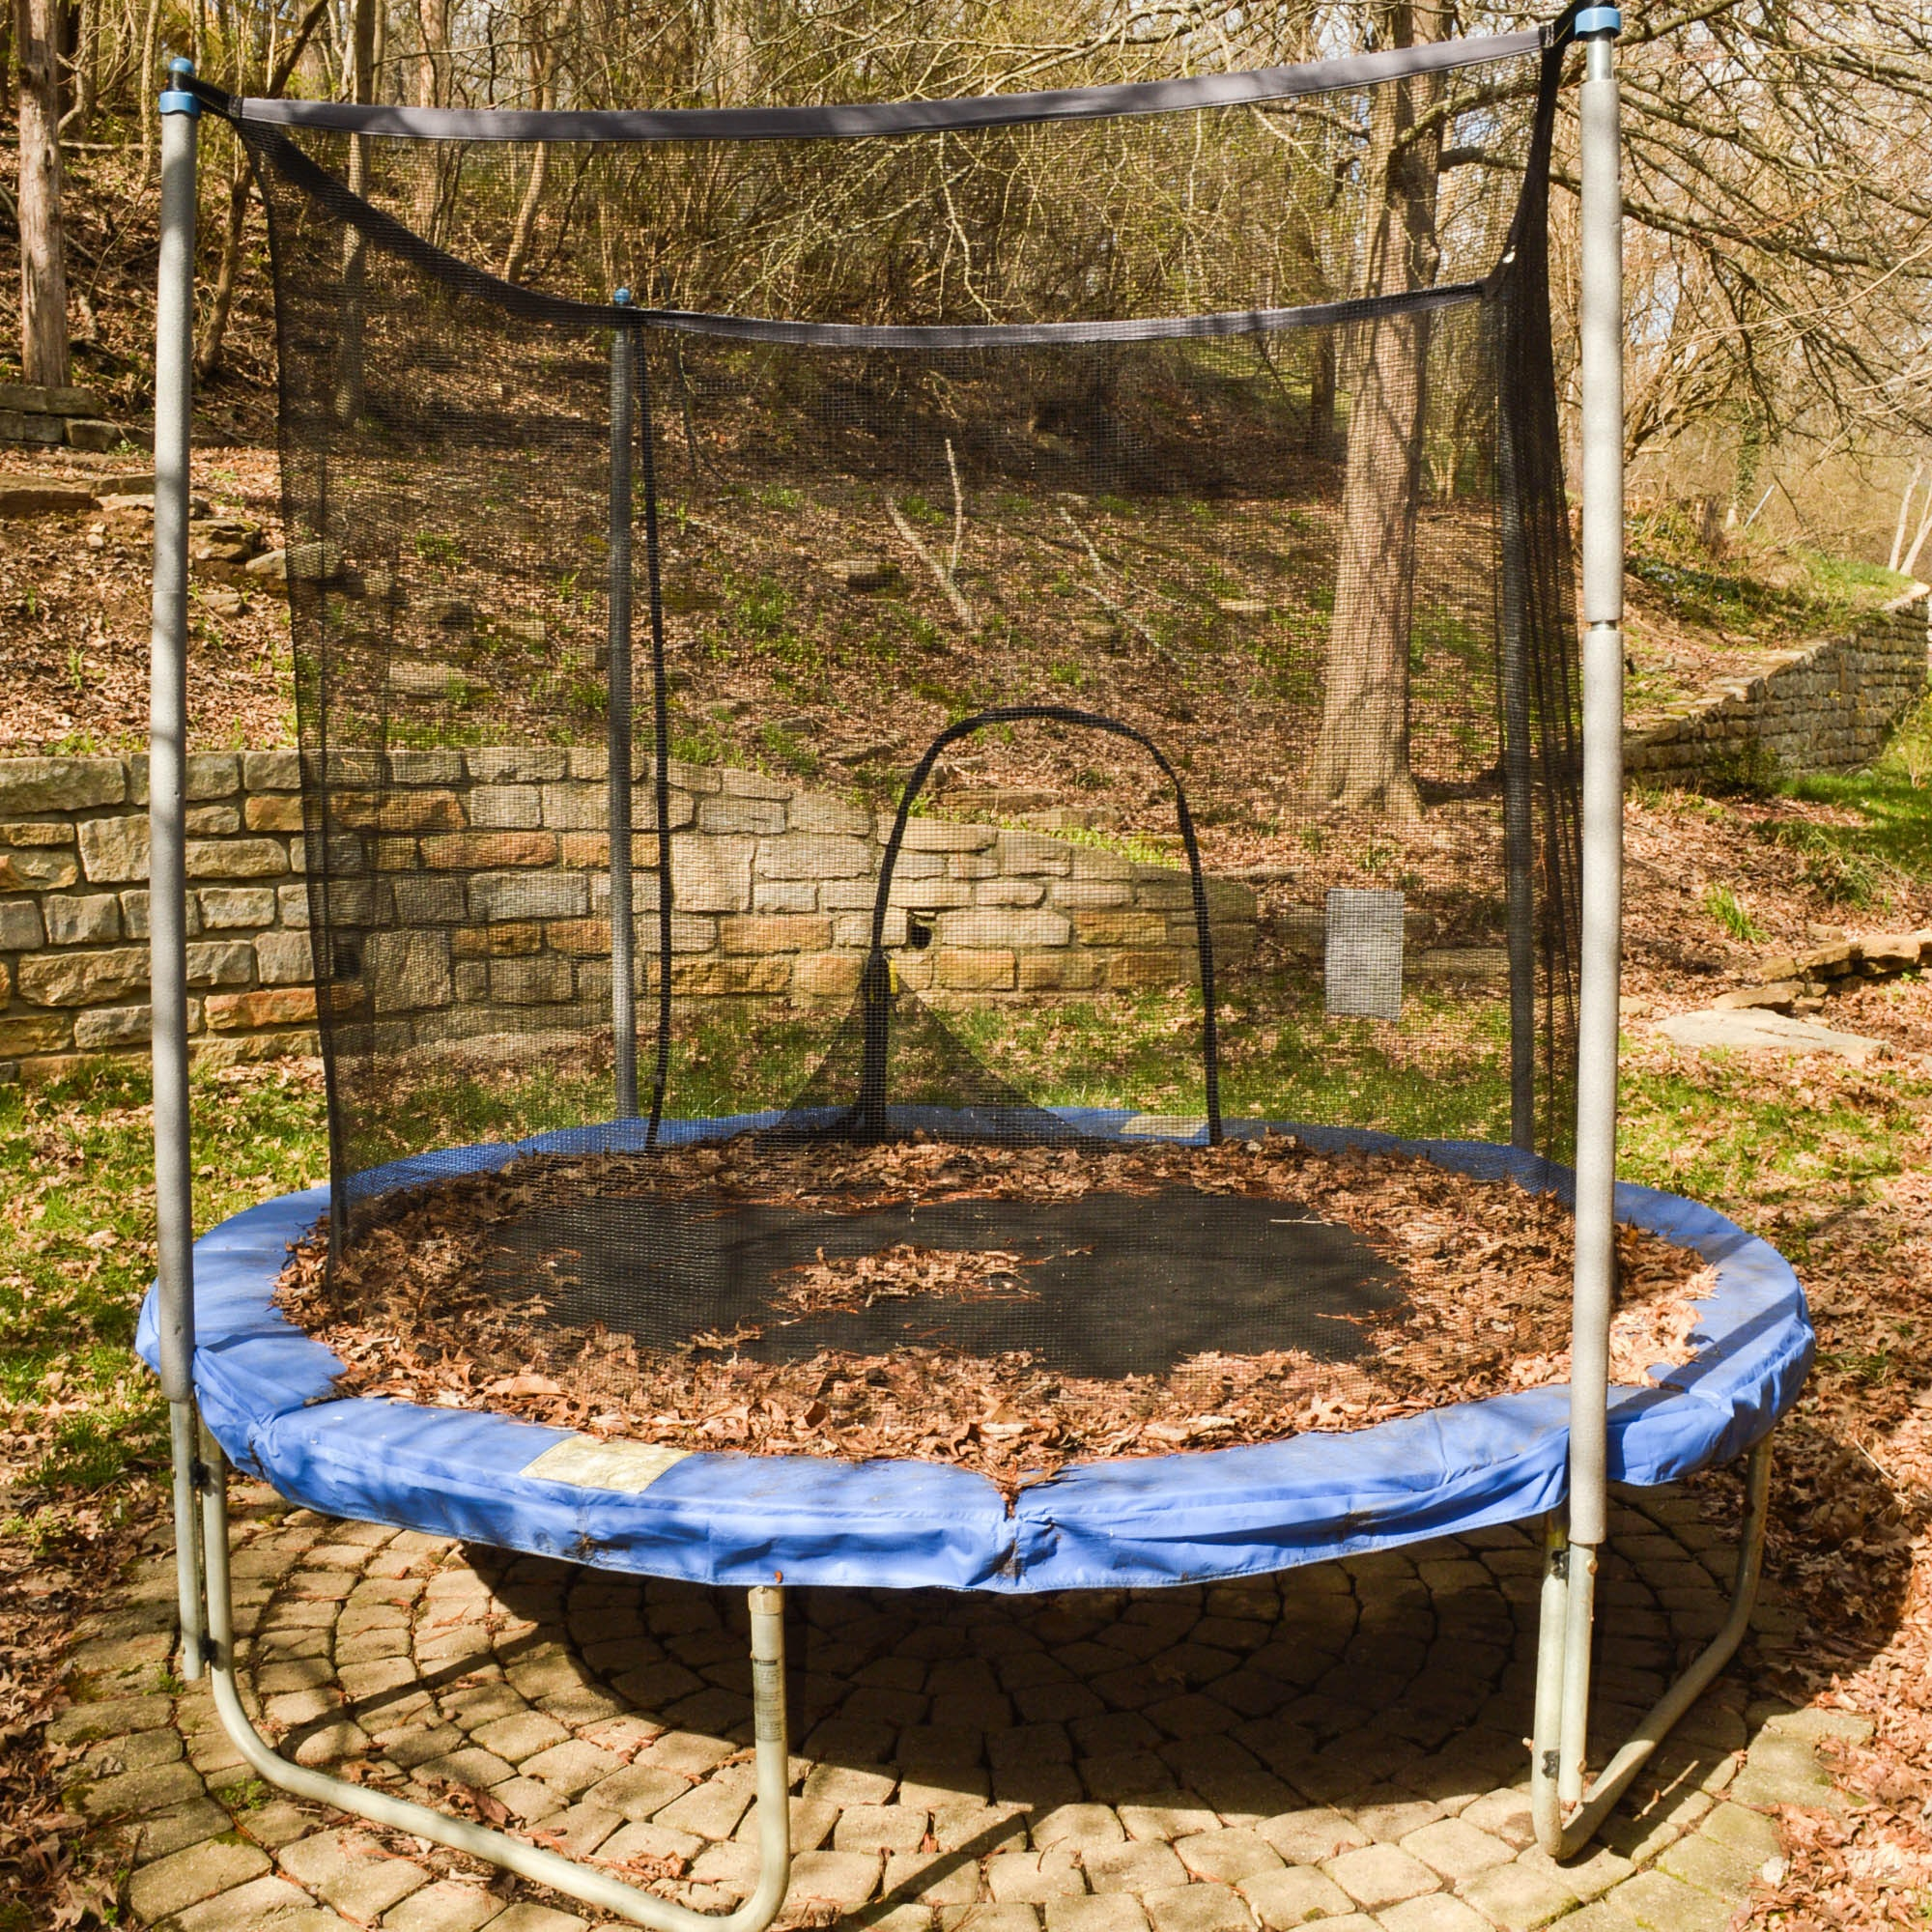 8-Foot AirZone Outdoor Spring Trampoline